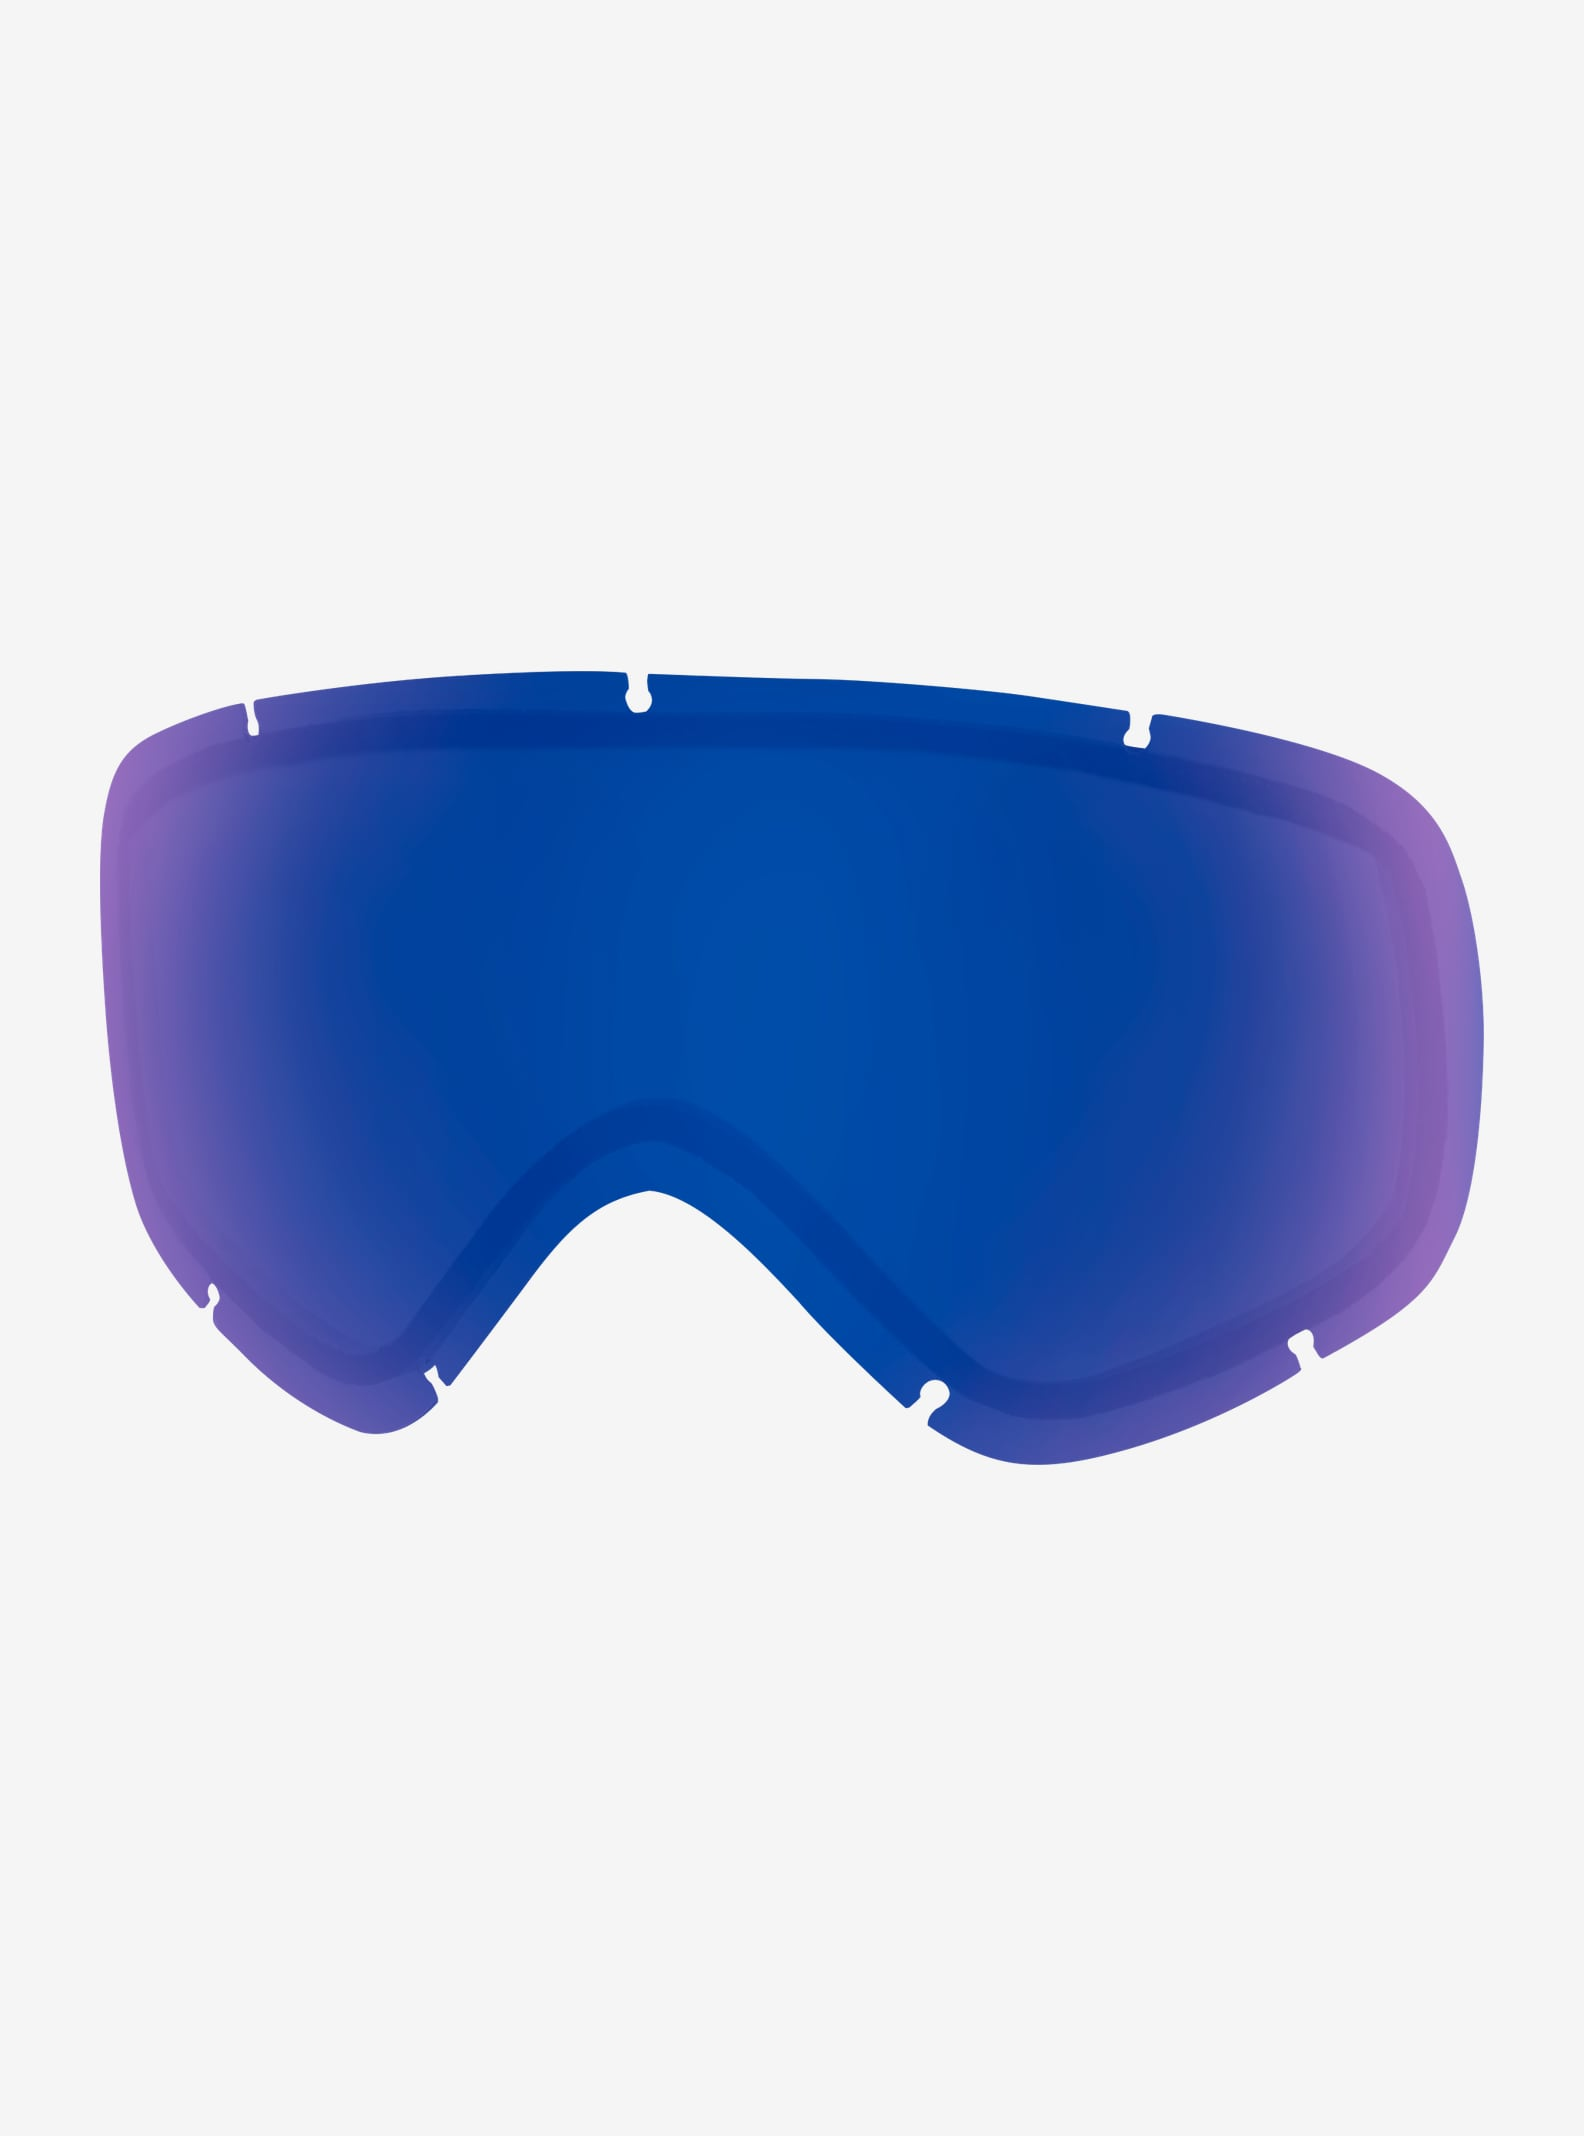 anon. Helix 2.0 Goggle Lens shown in Blue Cobalt (6% VLT)